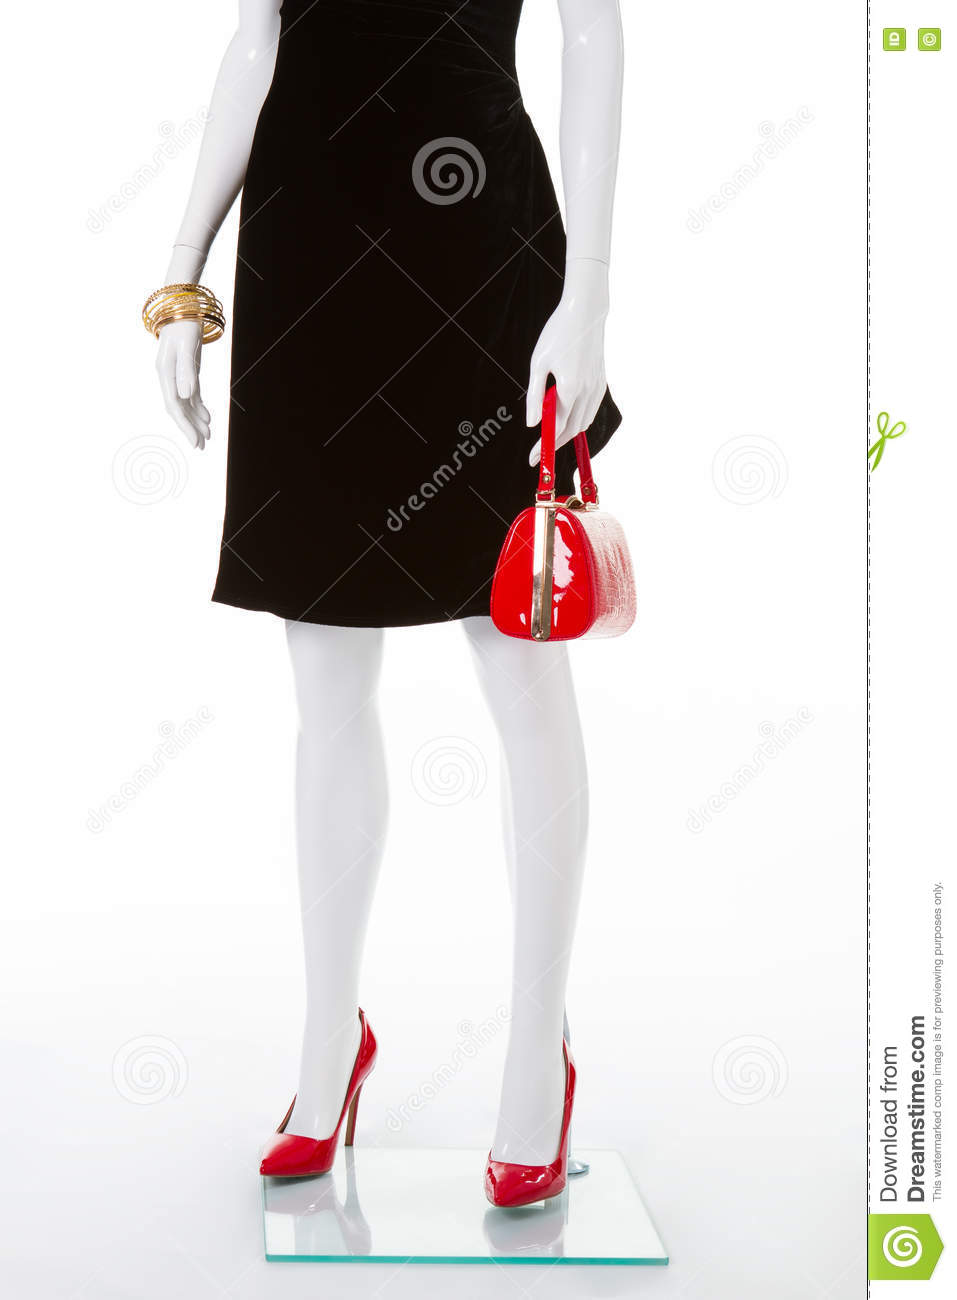 19ddad1a830 Classic Red Shoes And Handbag. Stock Photo - Image of garment ...